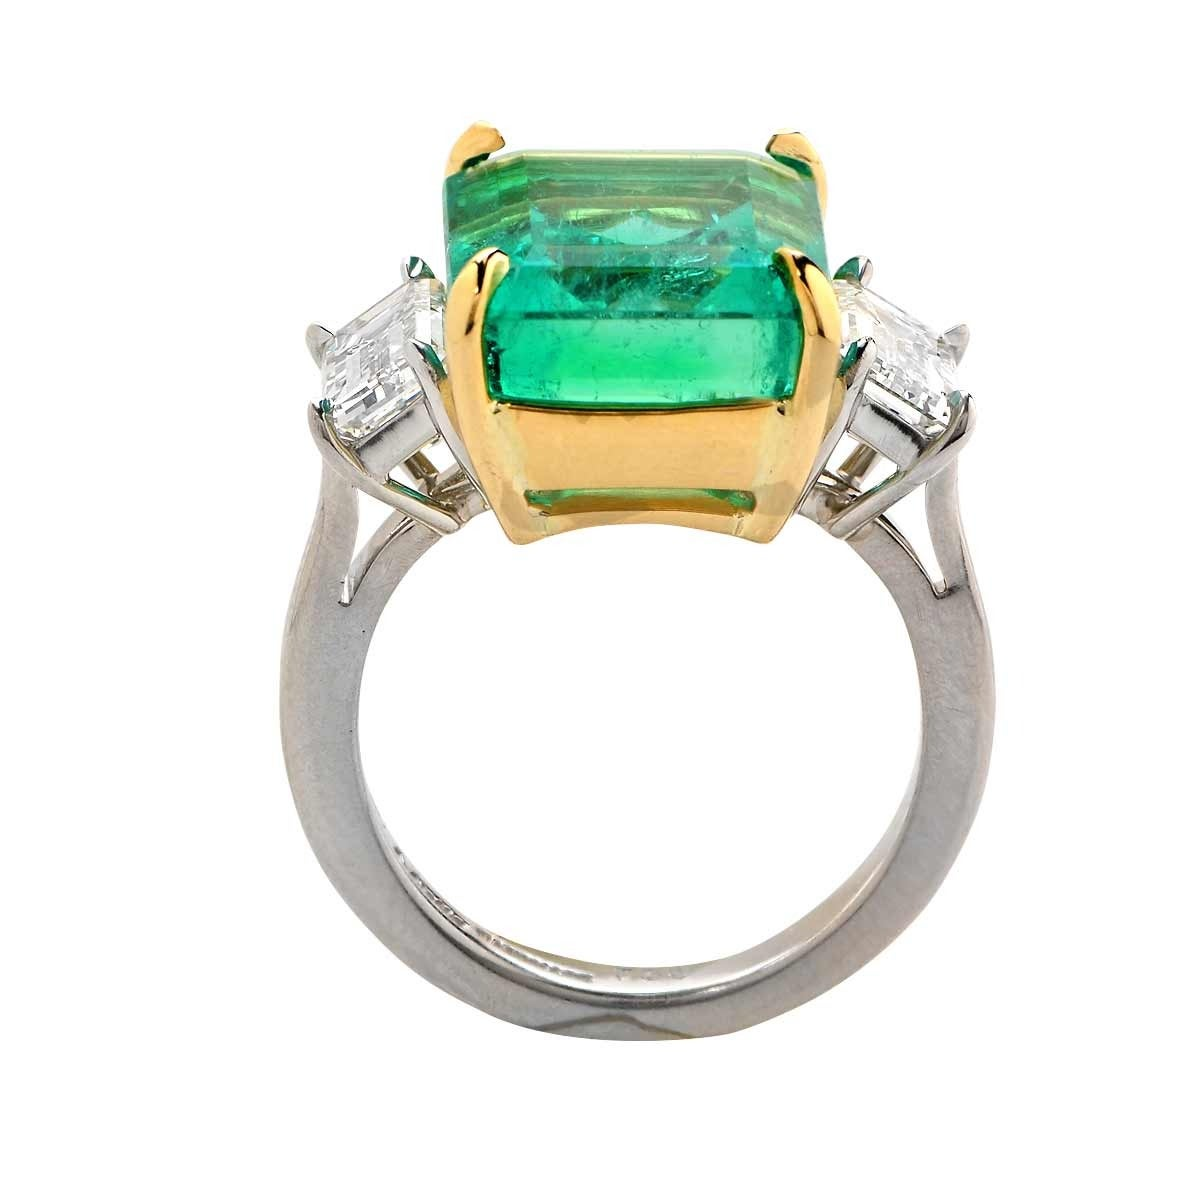 Platinum handmade ring featuring an AGL graded 9.84ct Colombian emerald flanked by two GIA graded emerald cut diamonds weighing 2.08cts total, H-I color, VVS2-VS2 clarity.  The ring is a size 6.25 and can be sized up or down. It is stamped and/or